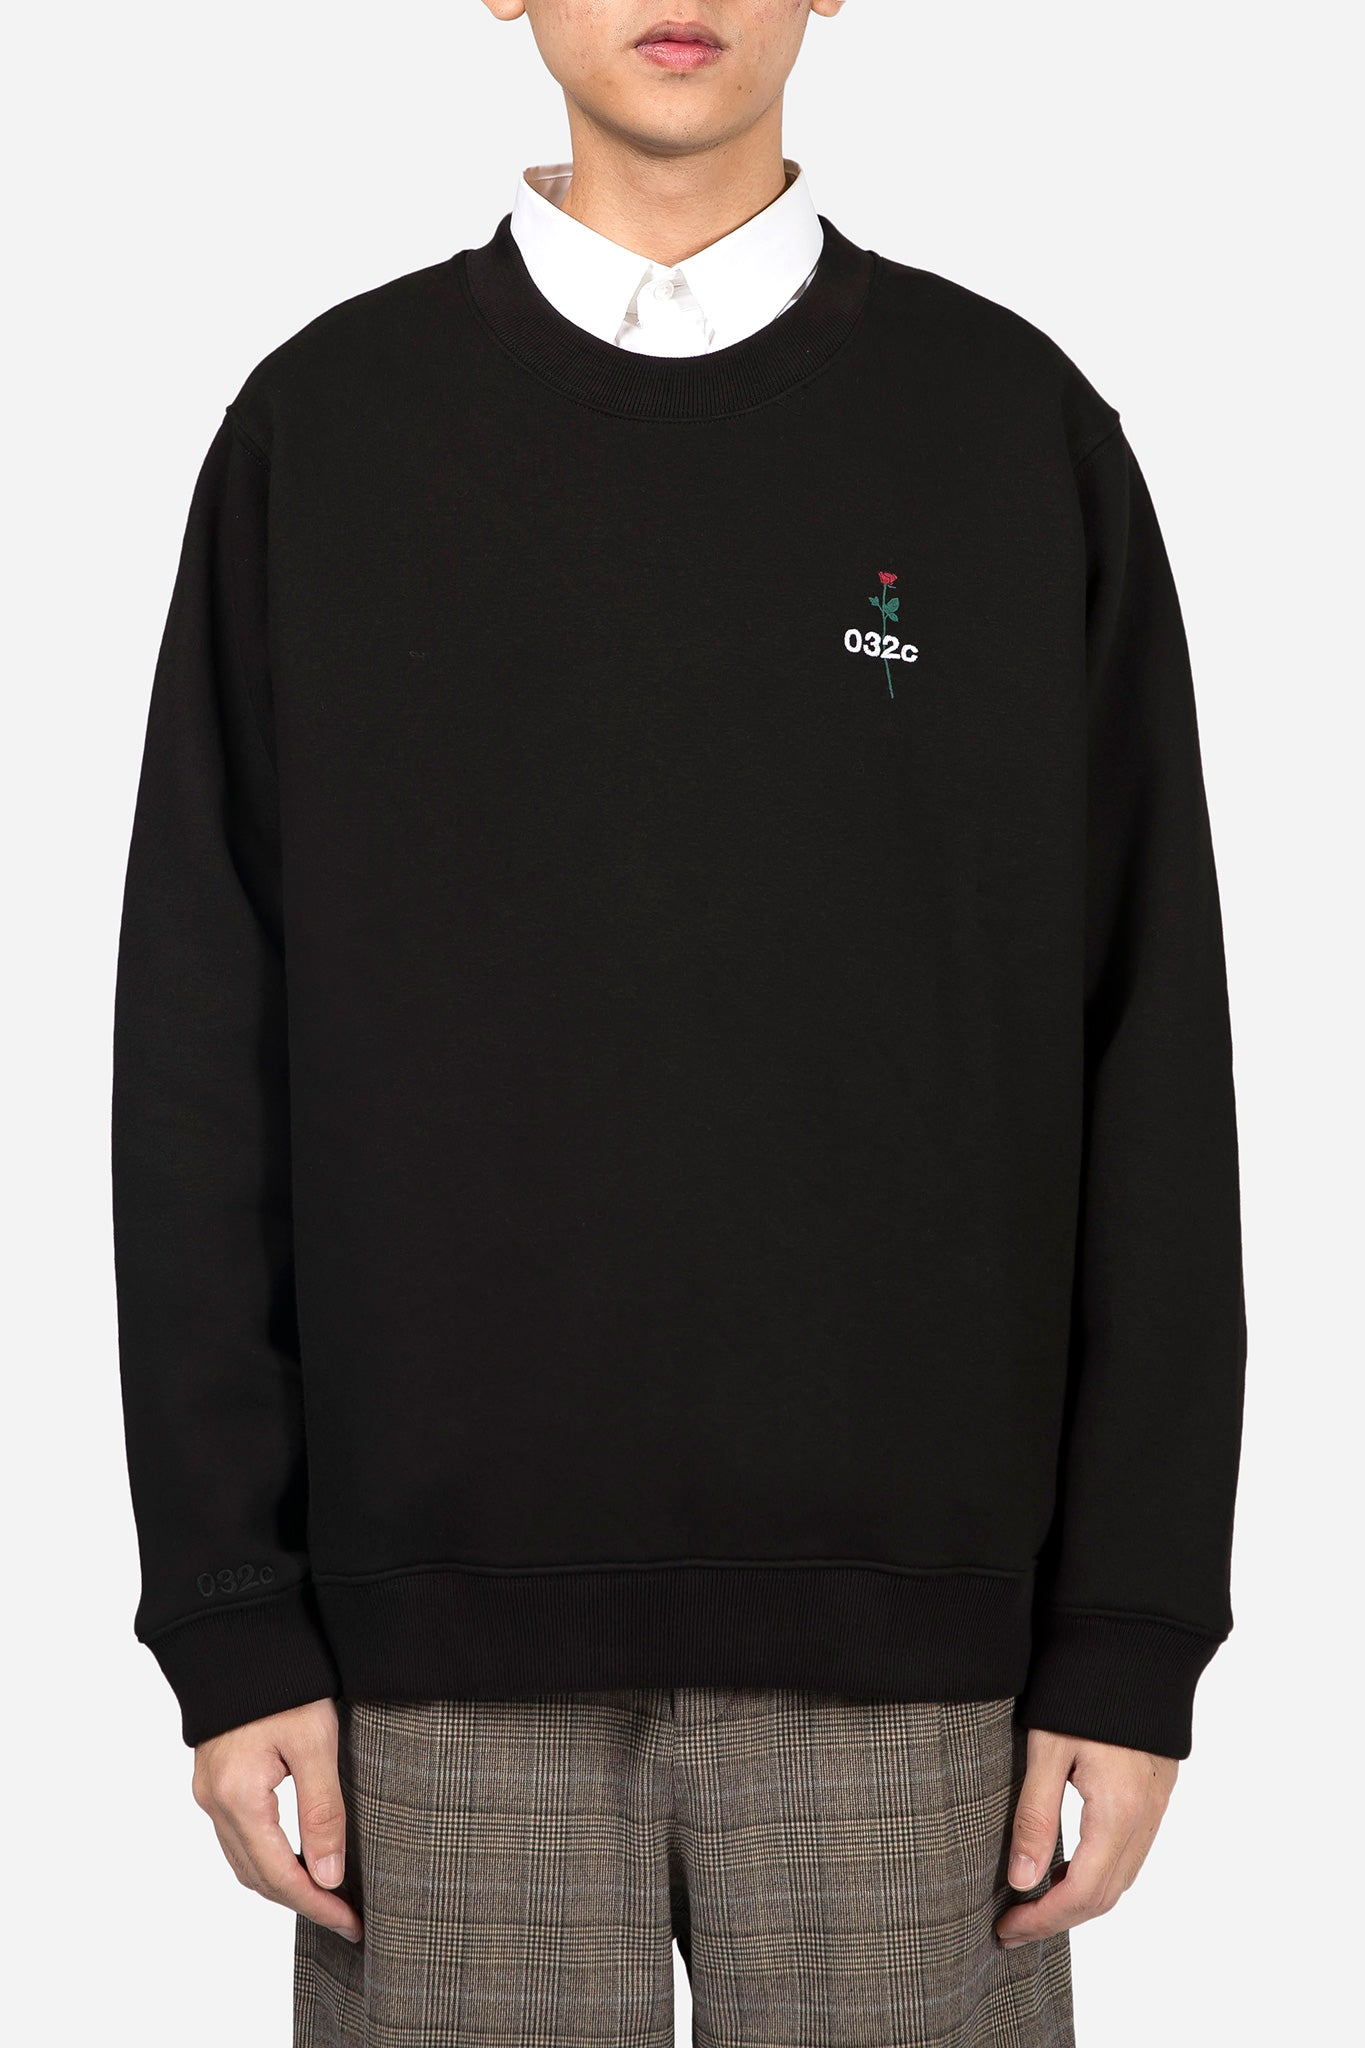 Don't Dream It's Over Sweatshirt Black